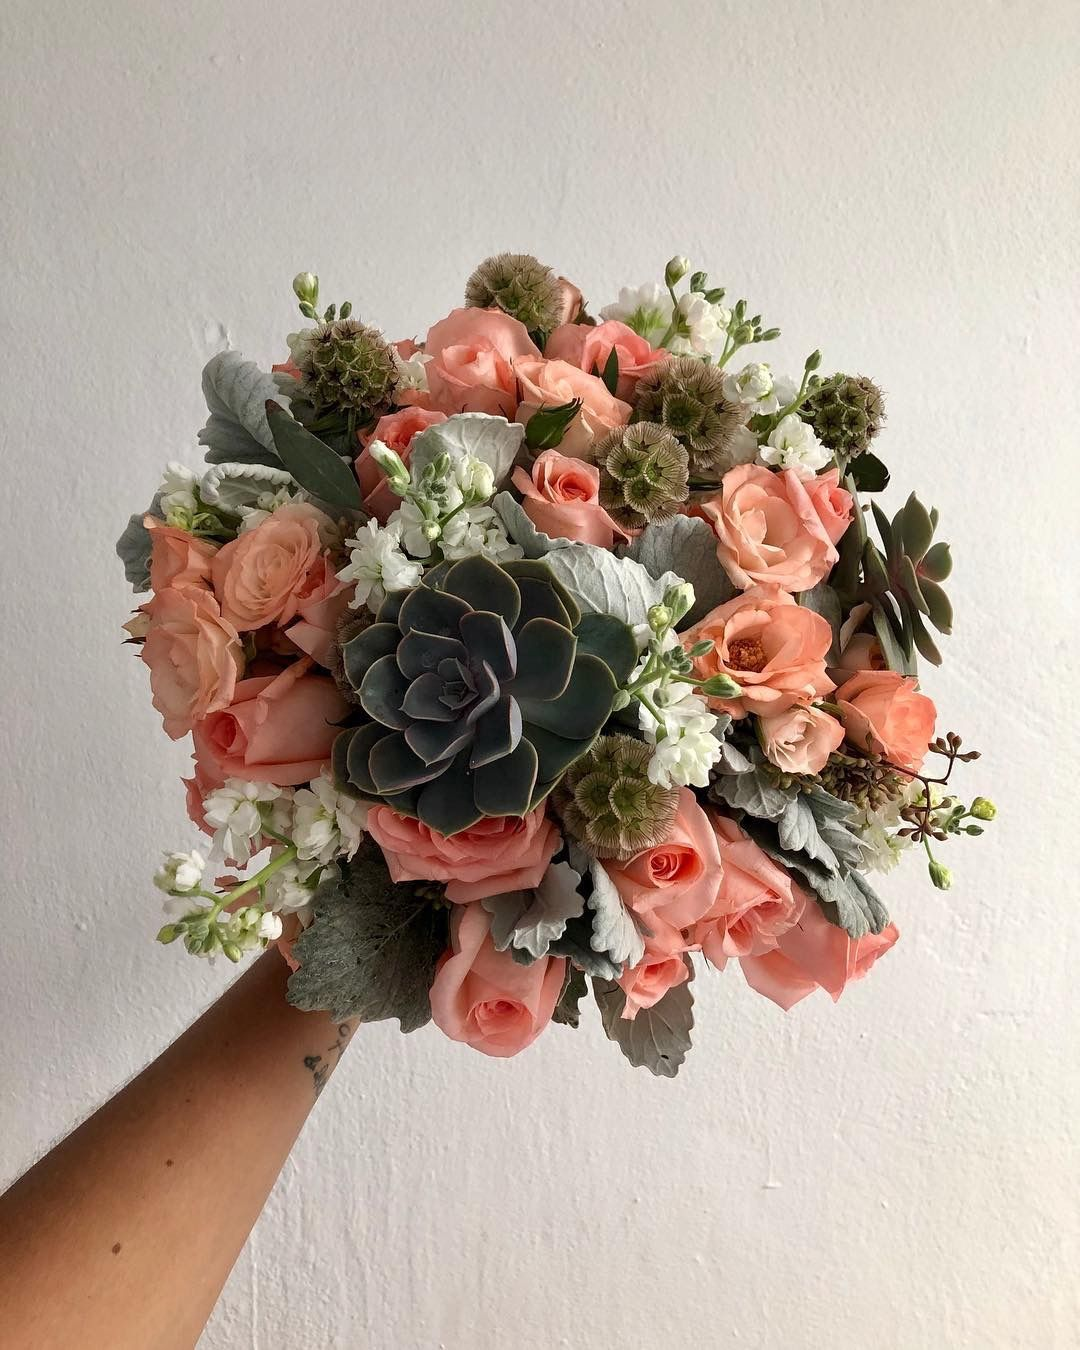 Cbr617 Weddings At The Beach Luxury Bridal Bouquet Coral Roses